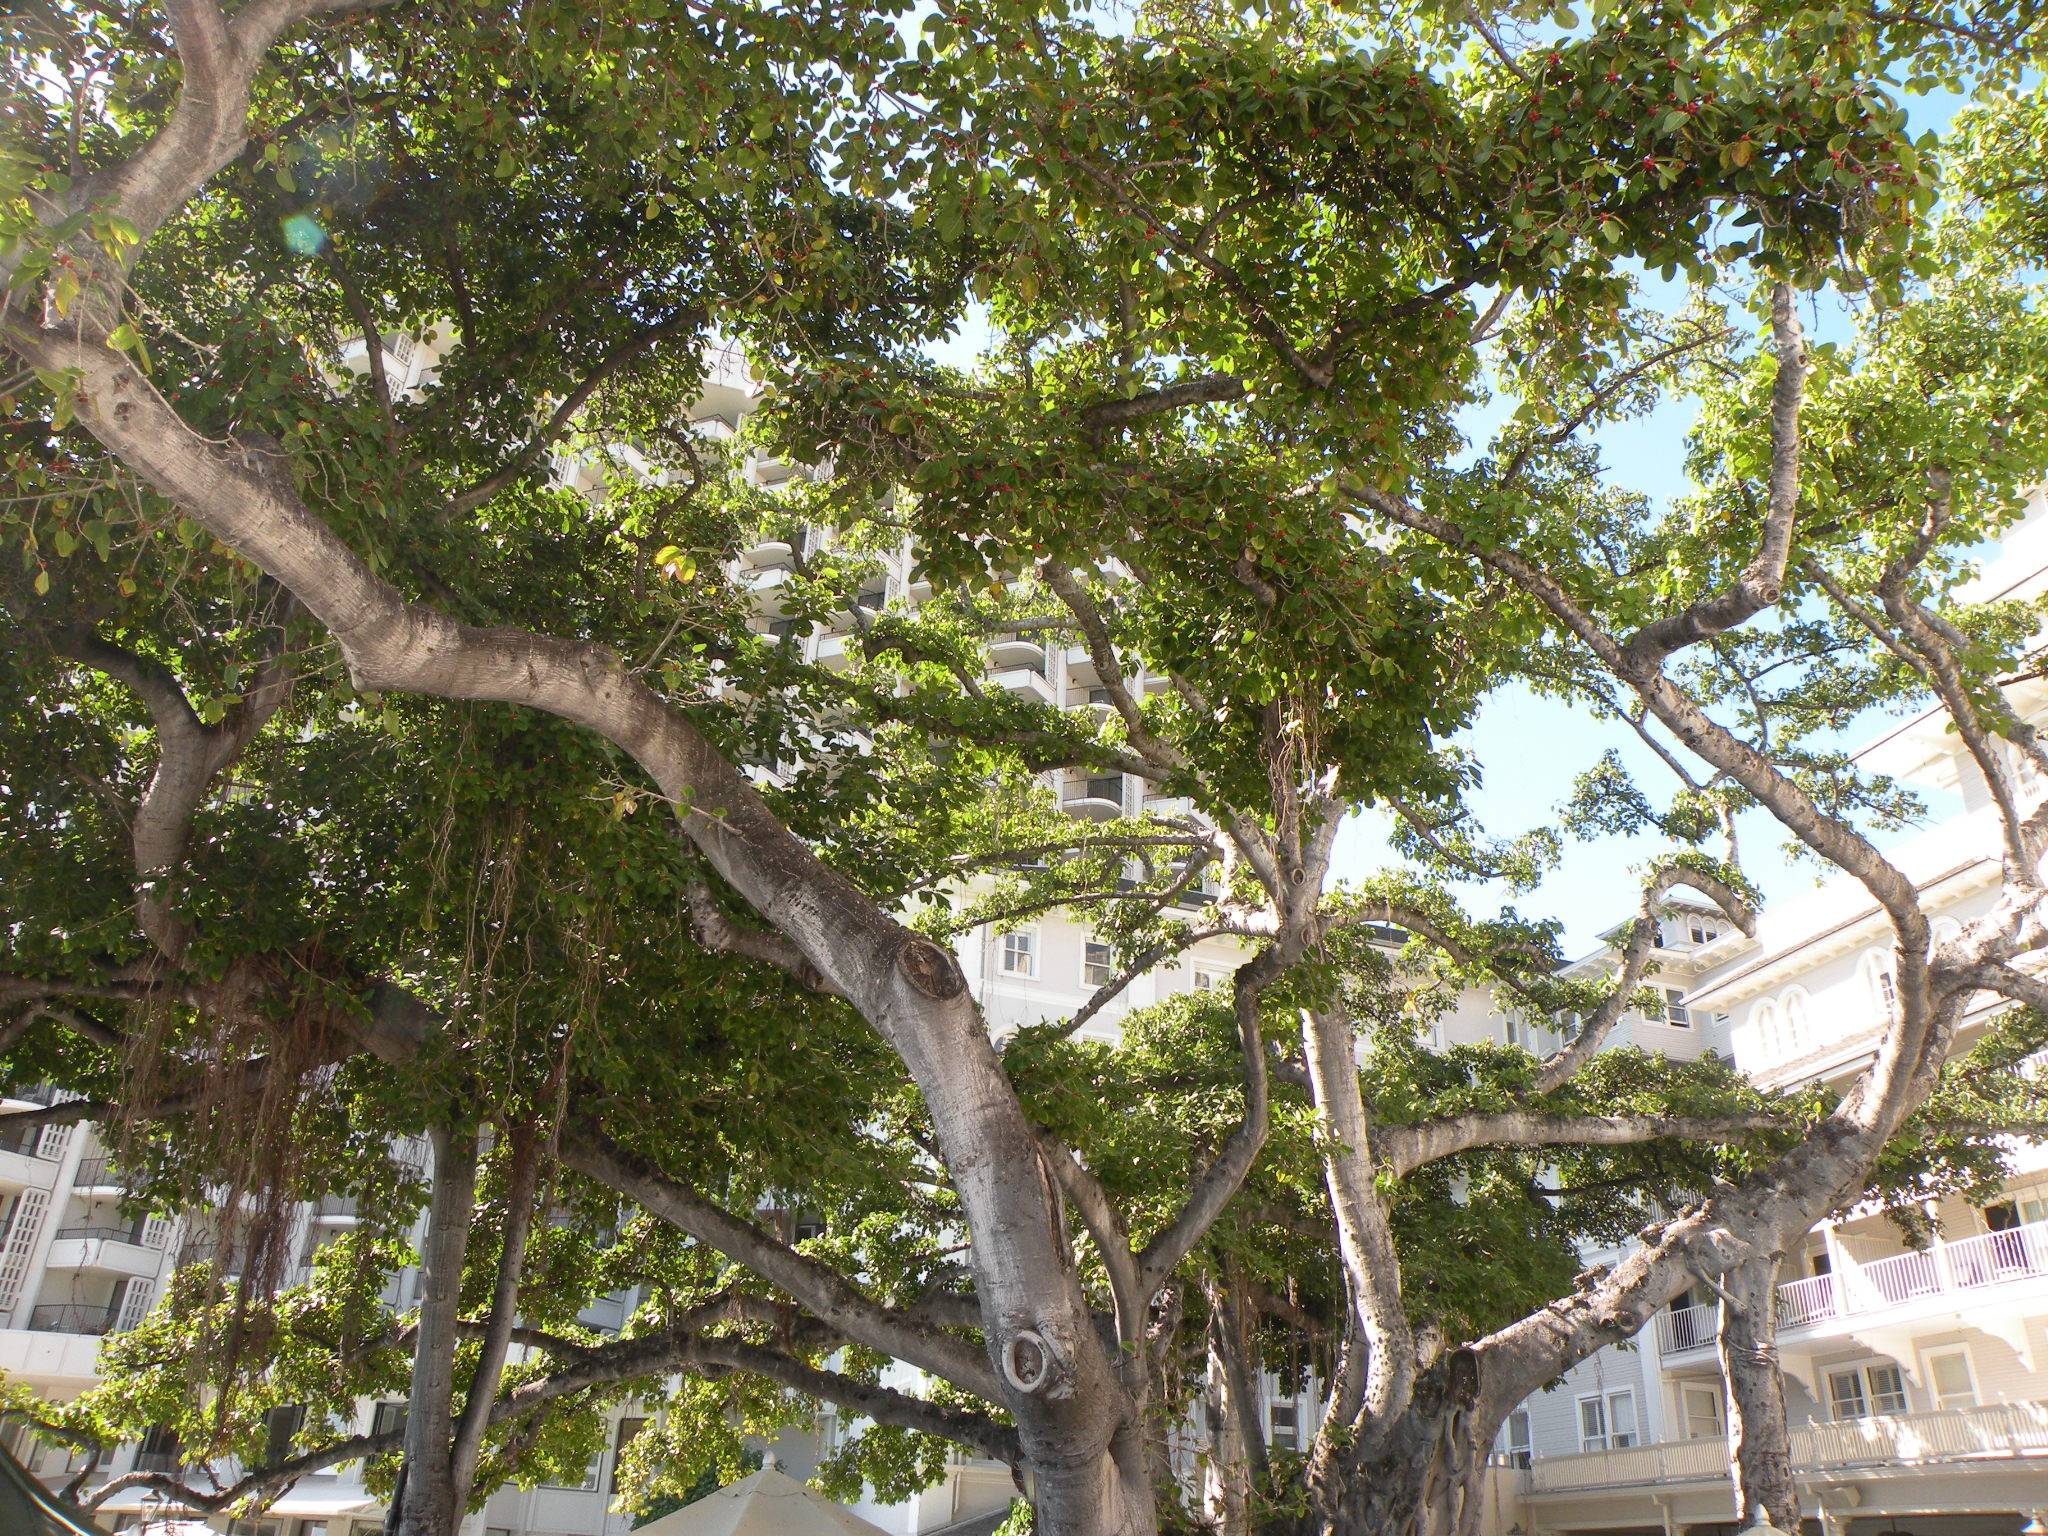 Historic Banyan Trees at the Moana